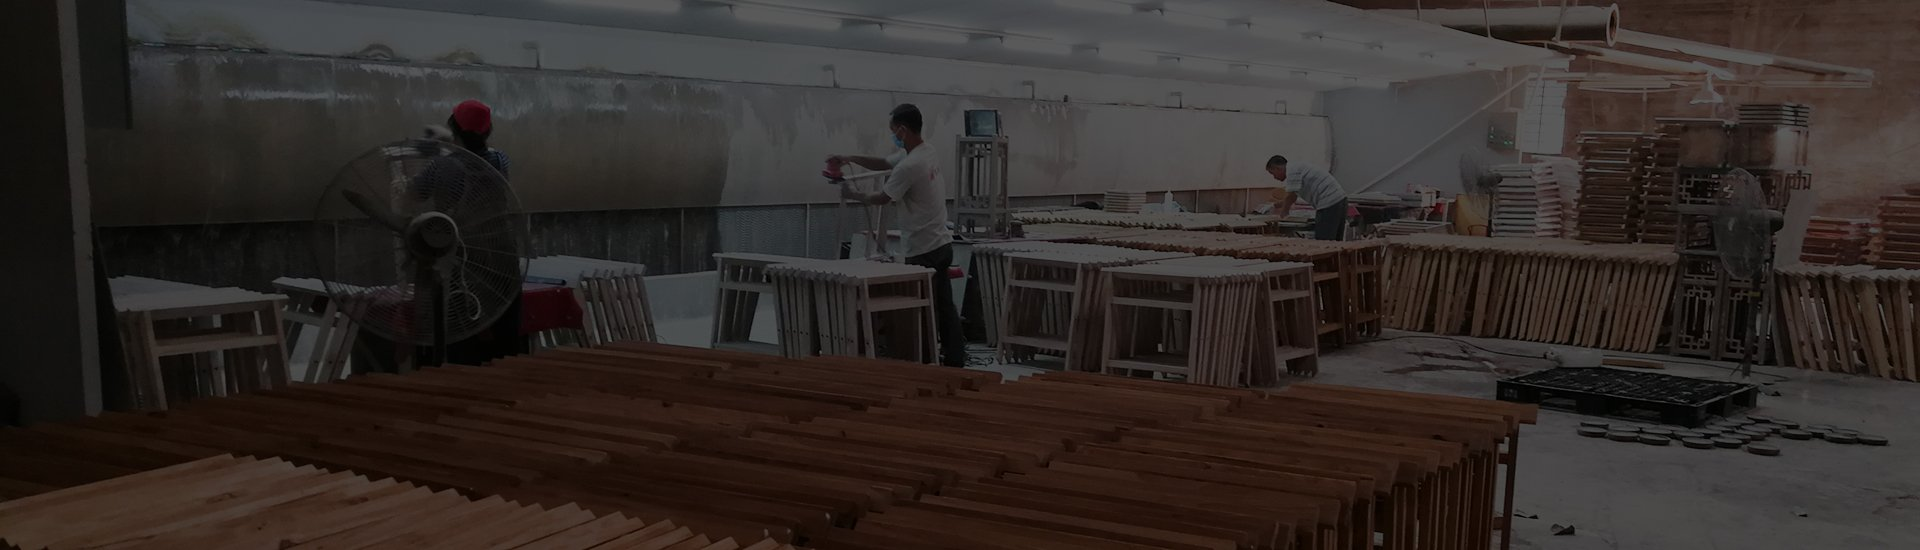 Leather workshop video-Fenghe-img-1